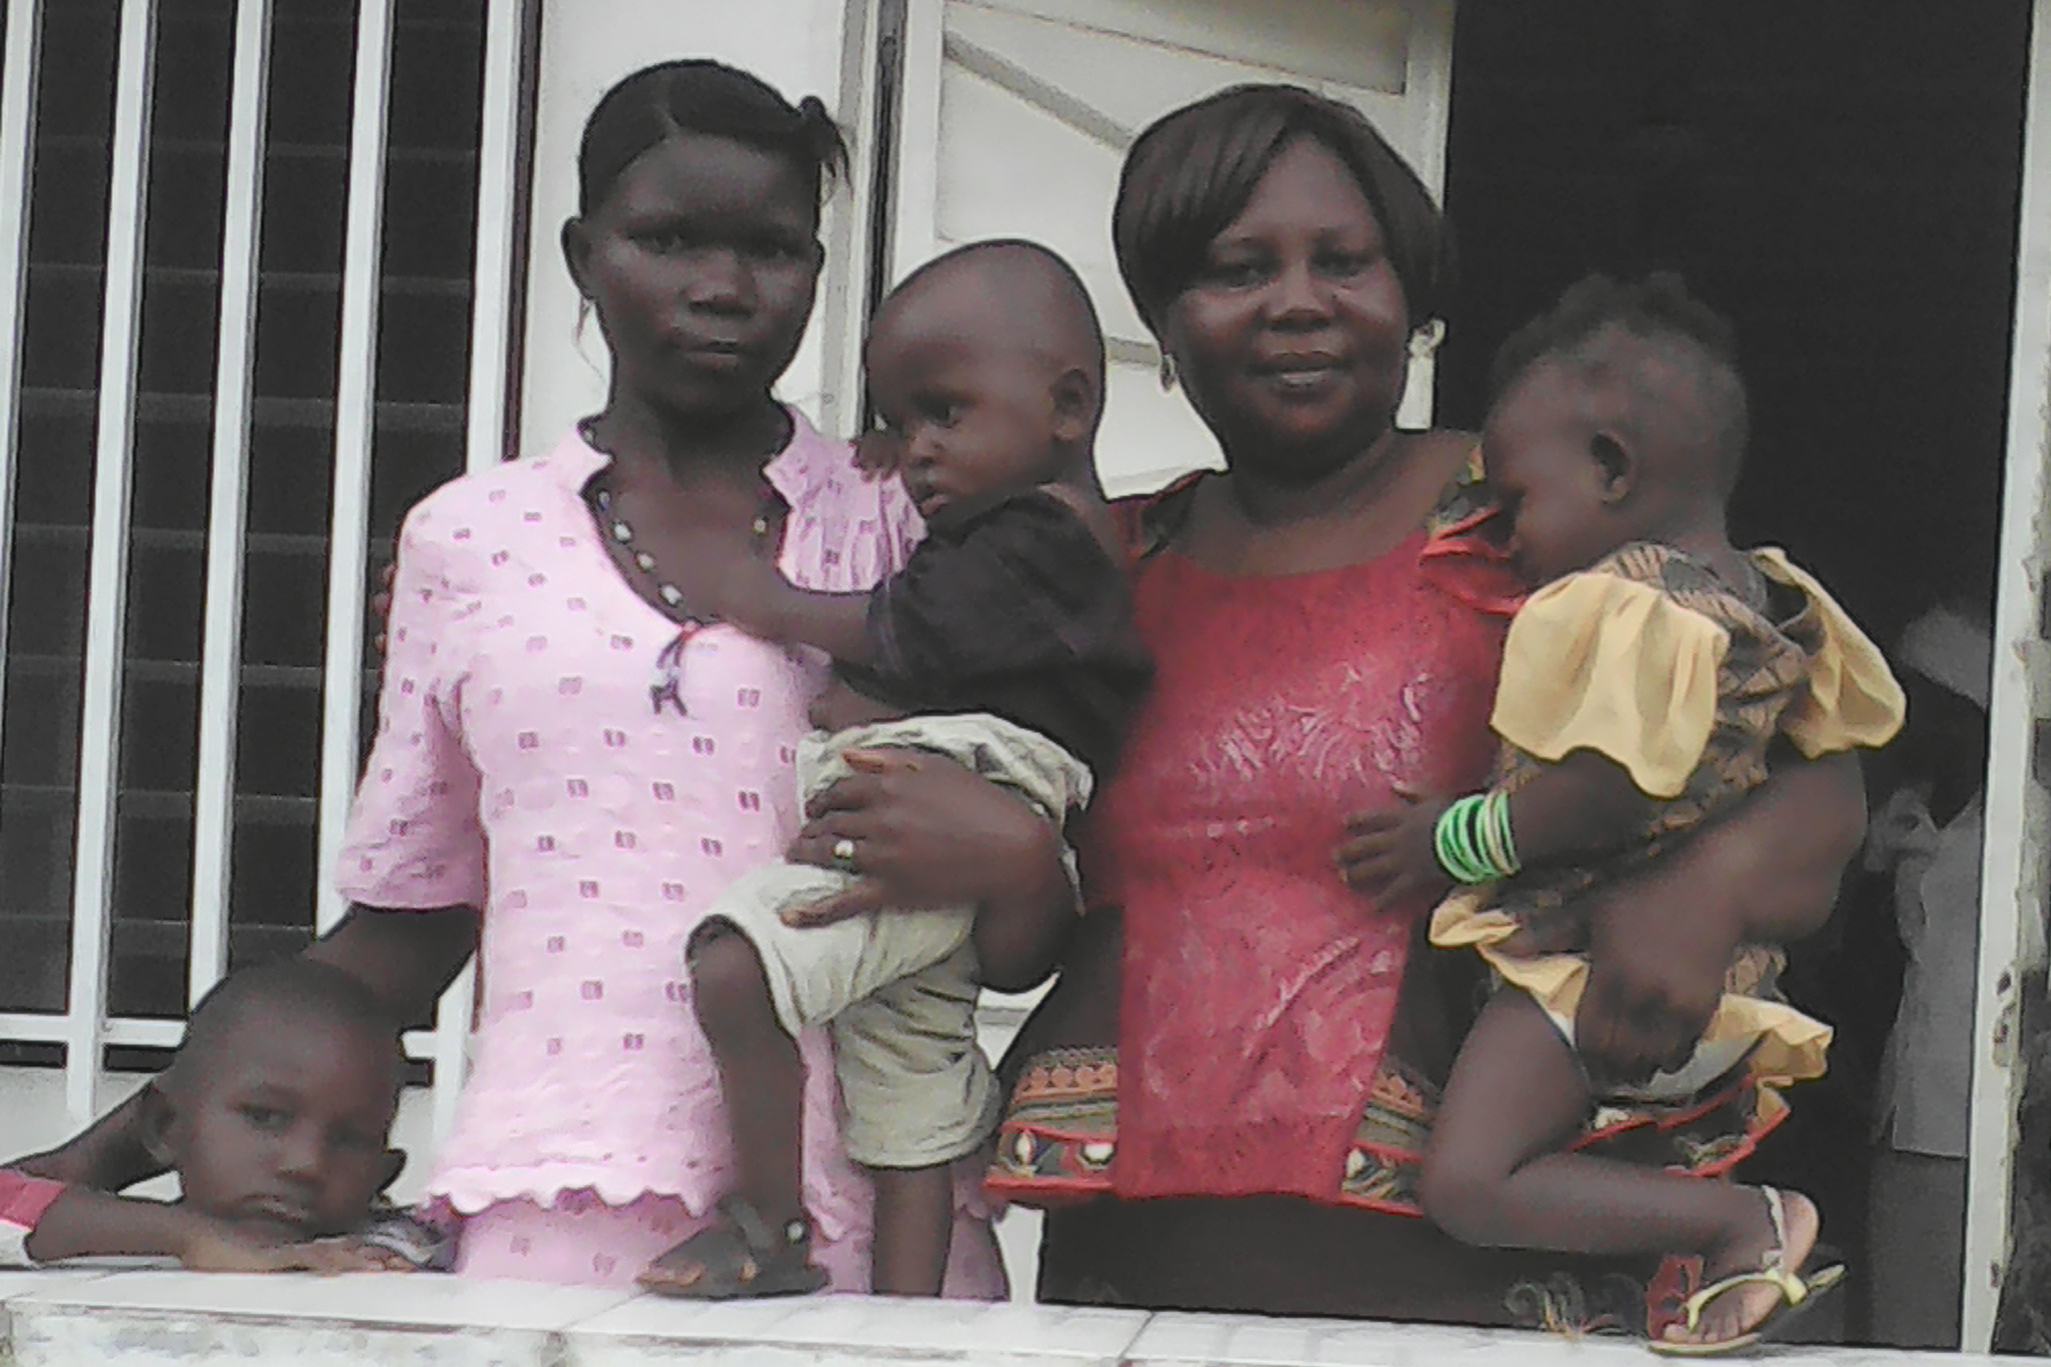 Sierra-Leone-9-25-2016-Agnes-with-twins-and-mother-at-church-investigating-and-soon-to-be-baptized-parents-Cropped